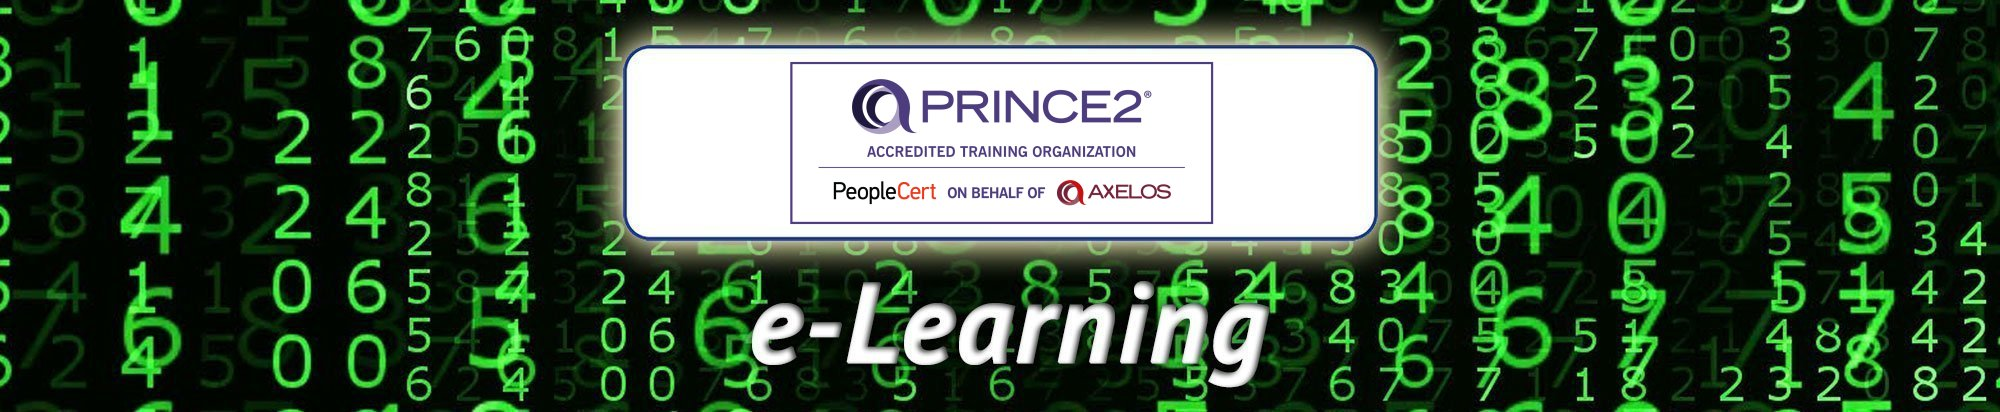 Prince 2 Exams Only, PRINCE2 Exam Cost and Plus Packages